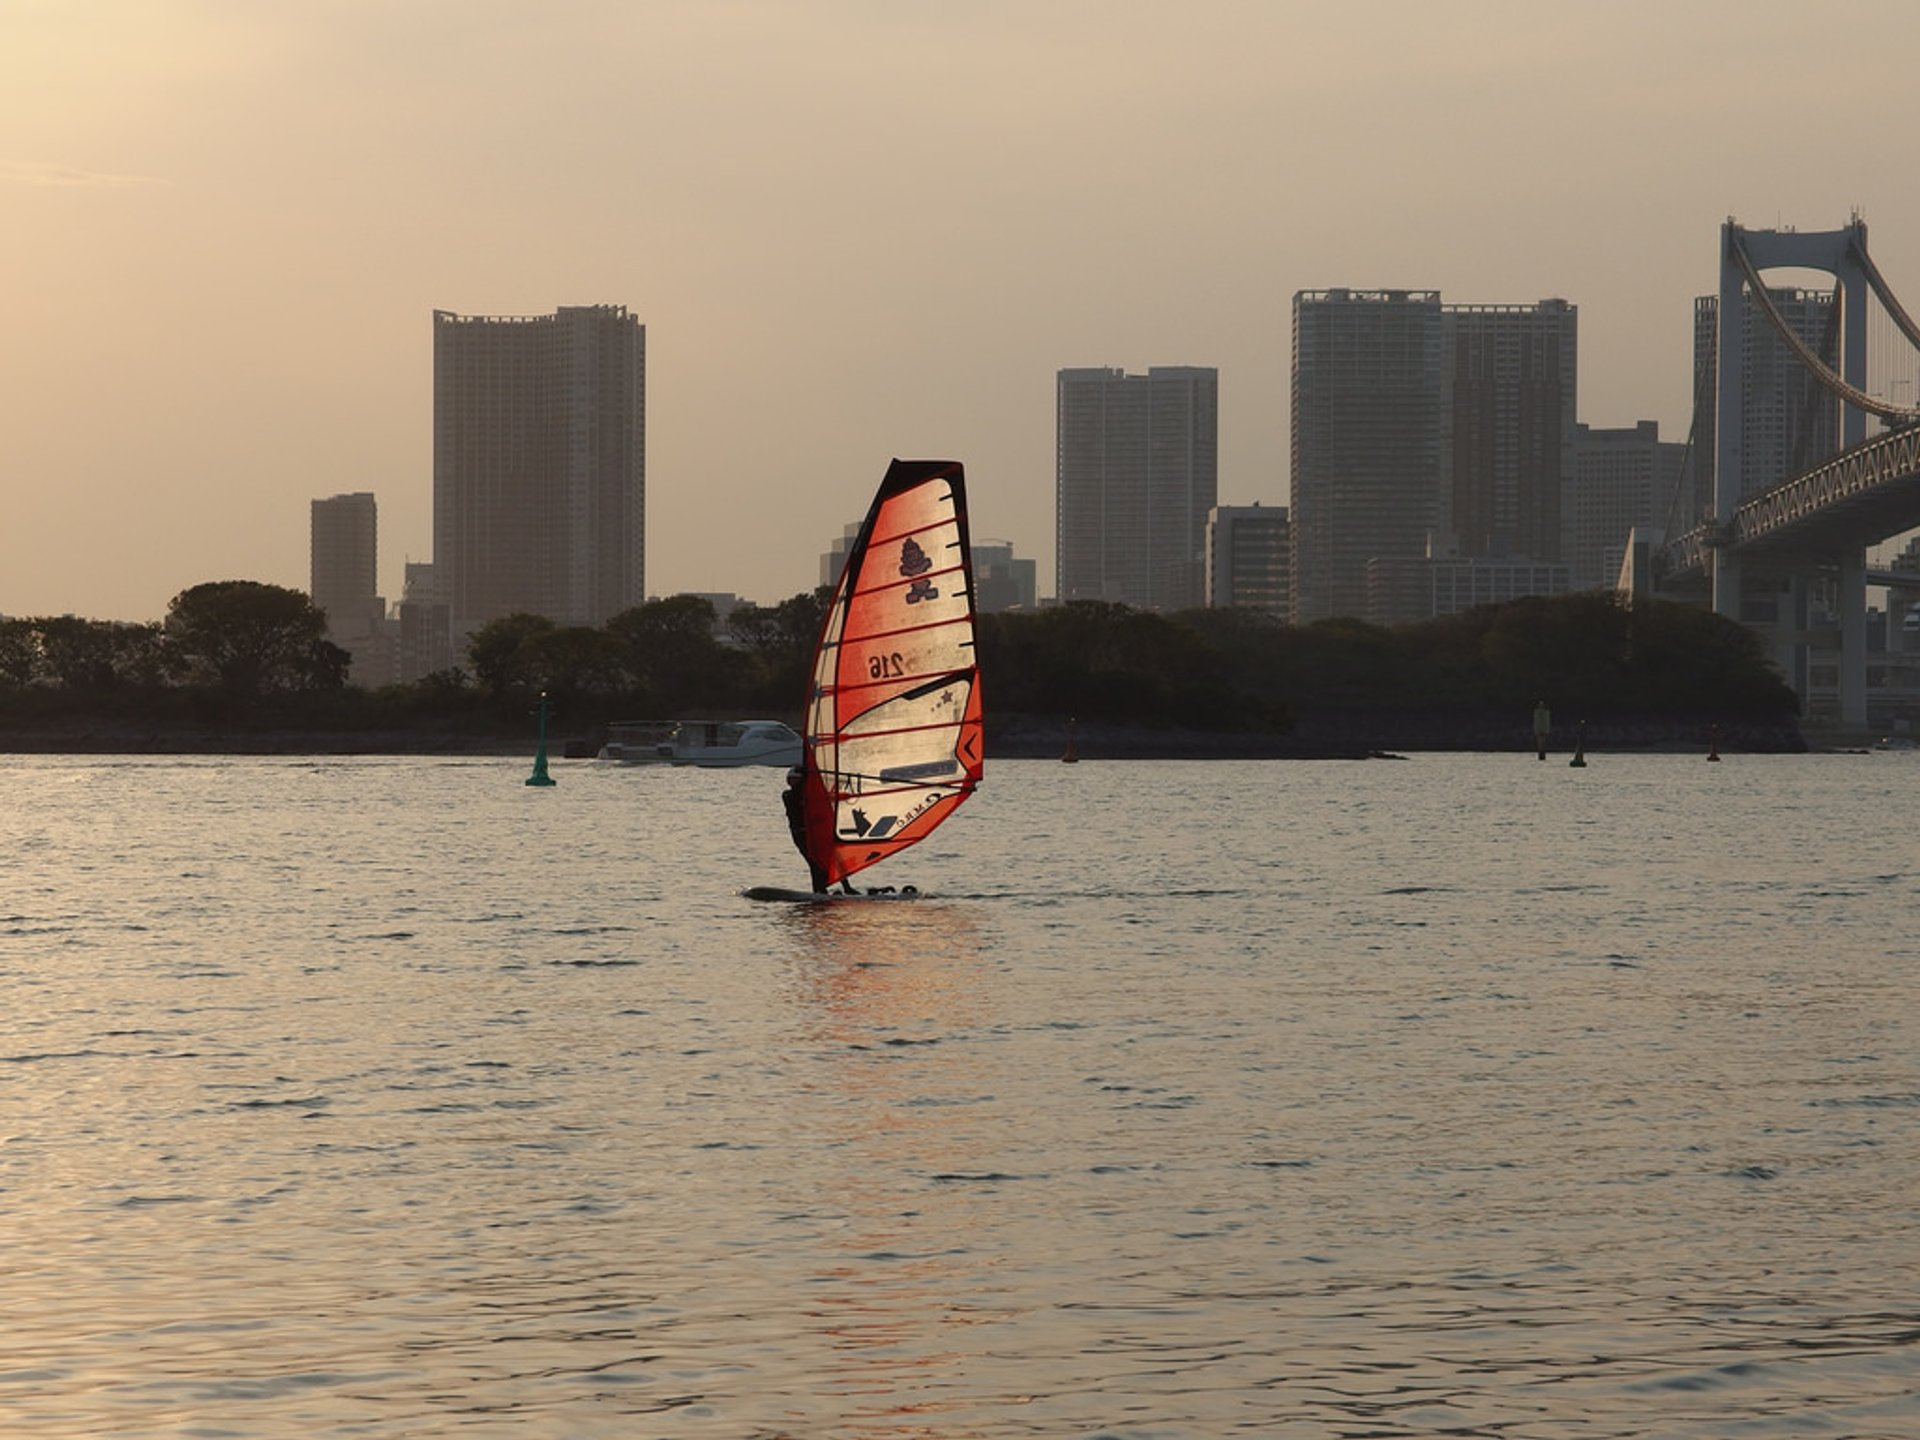 Windsurfing in Japan 2020 - Best Time